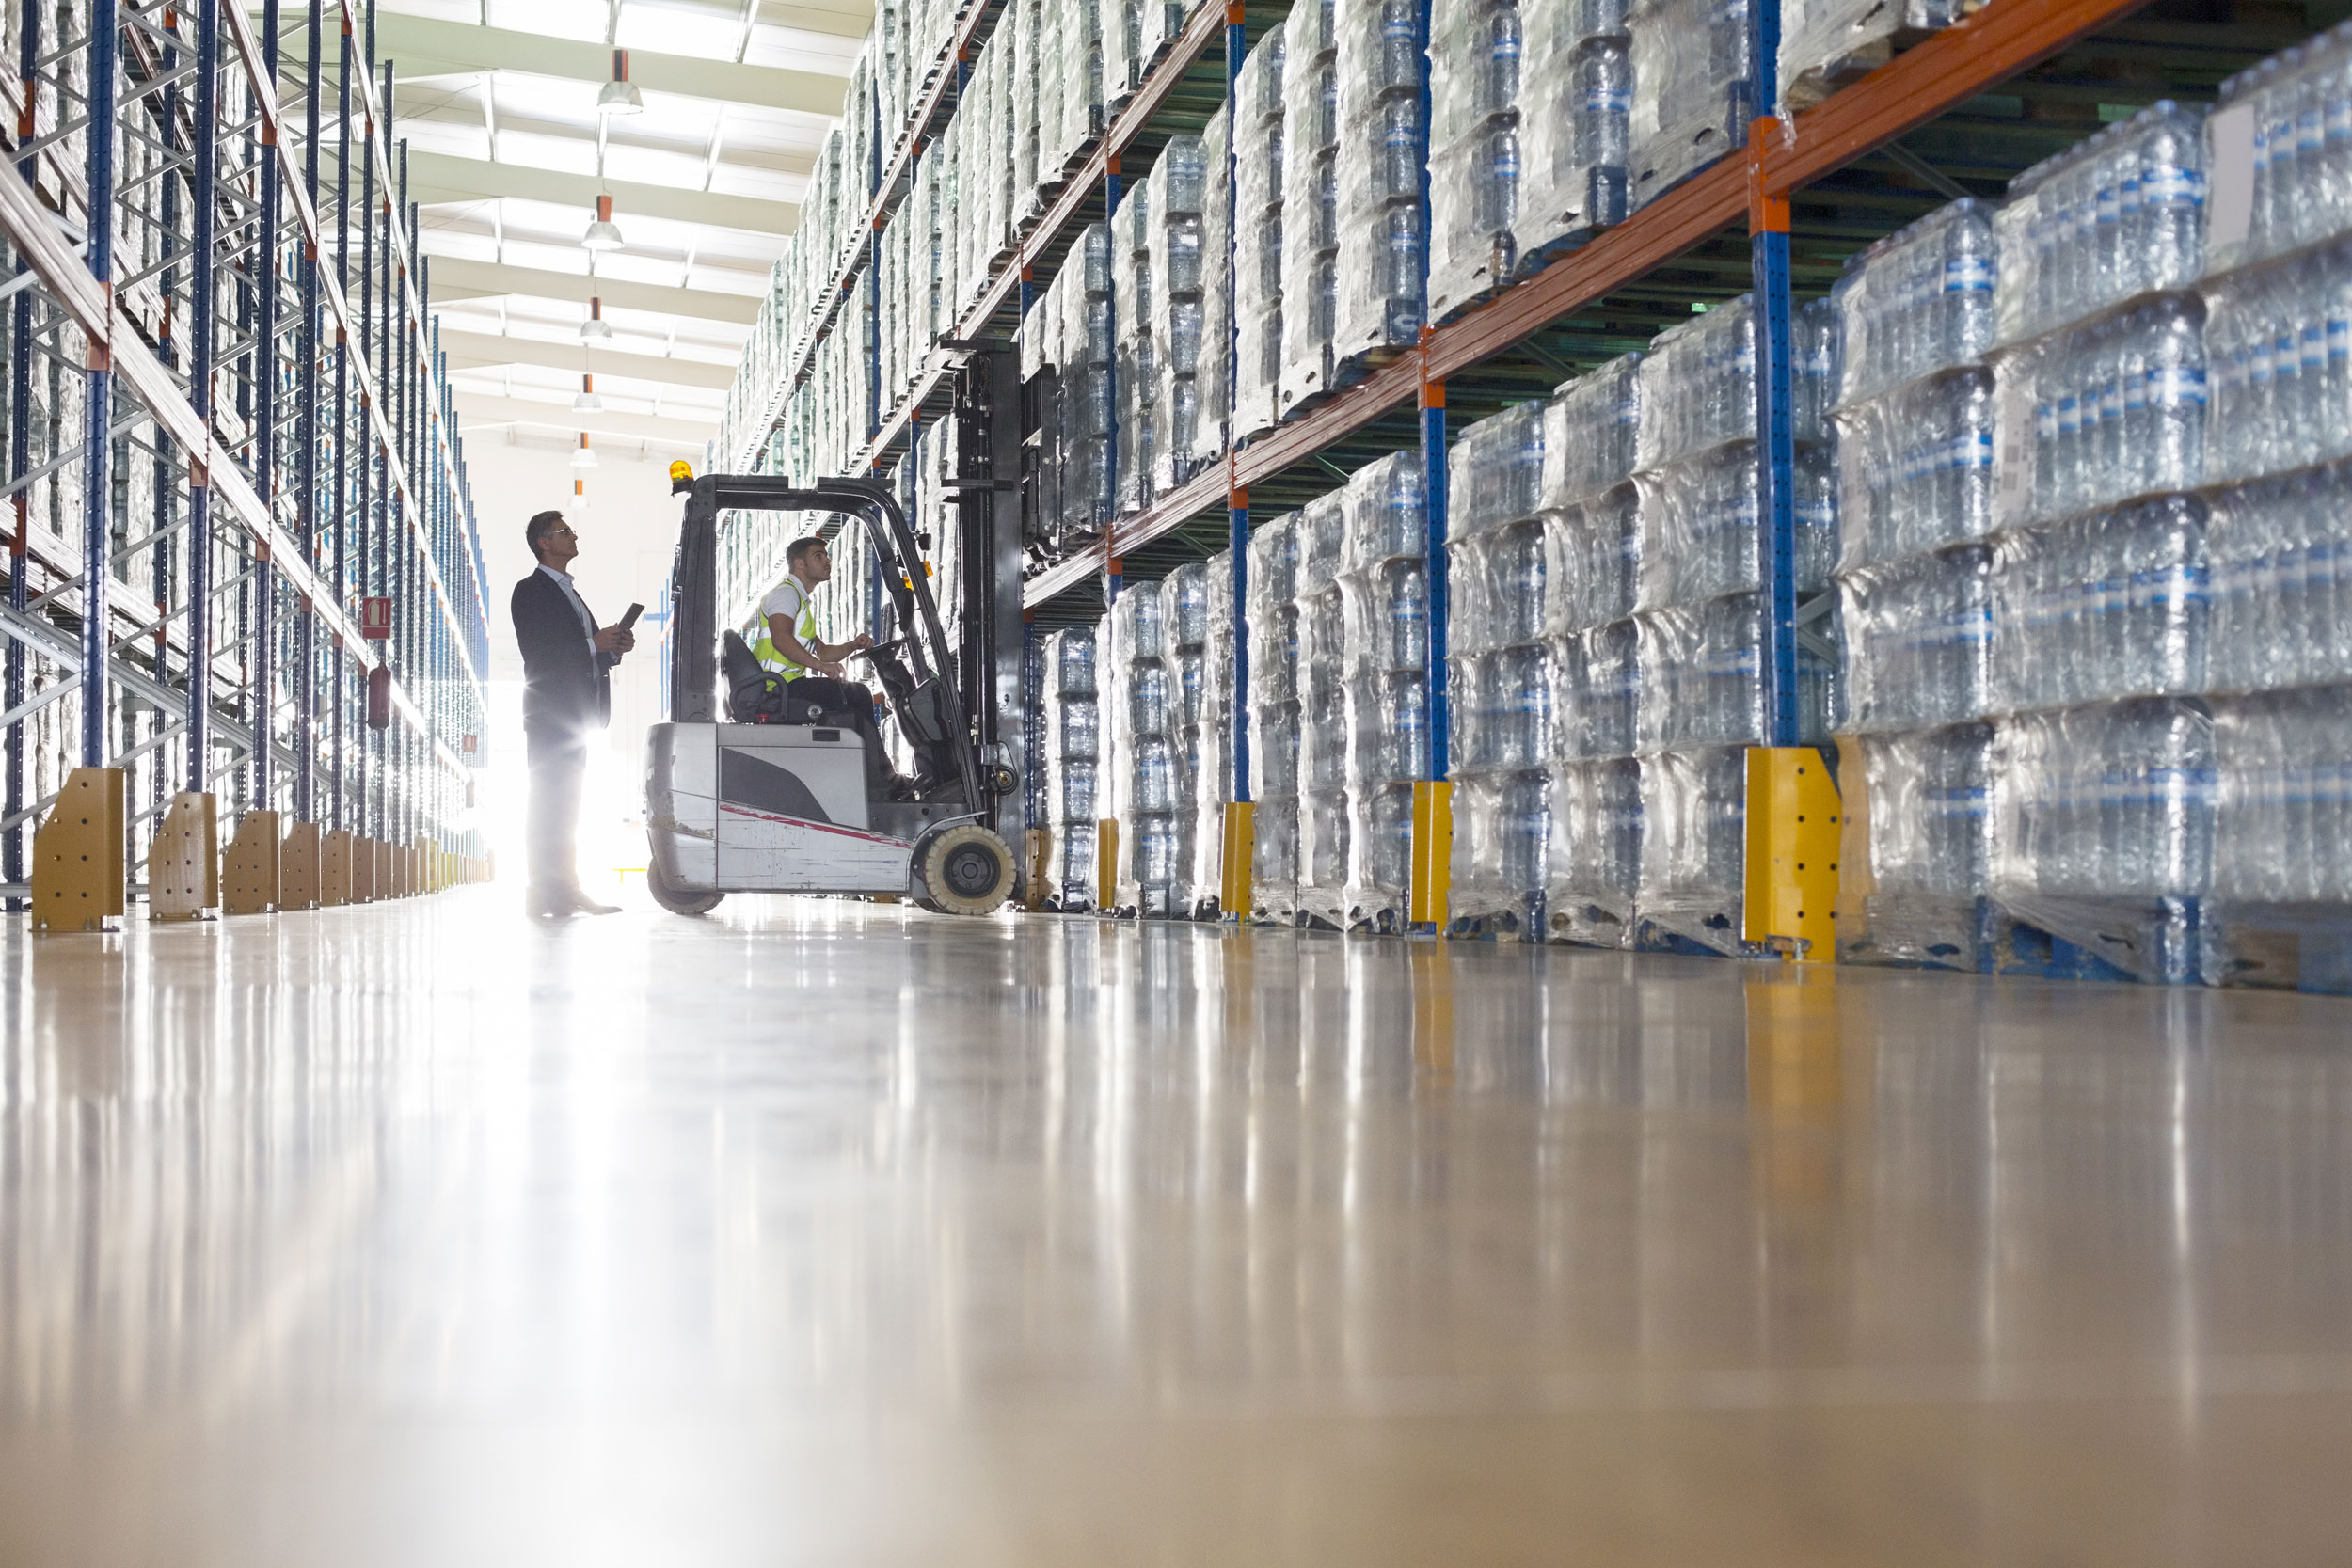 European Steel Manufacturers Sales And Distribution Companies Mail: Img-erp-org-workers-with-forklift-in-bottling-warehouse